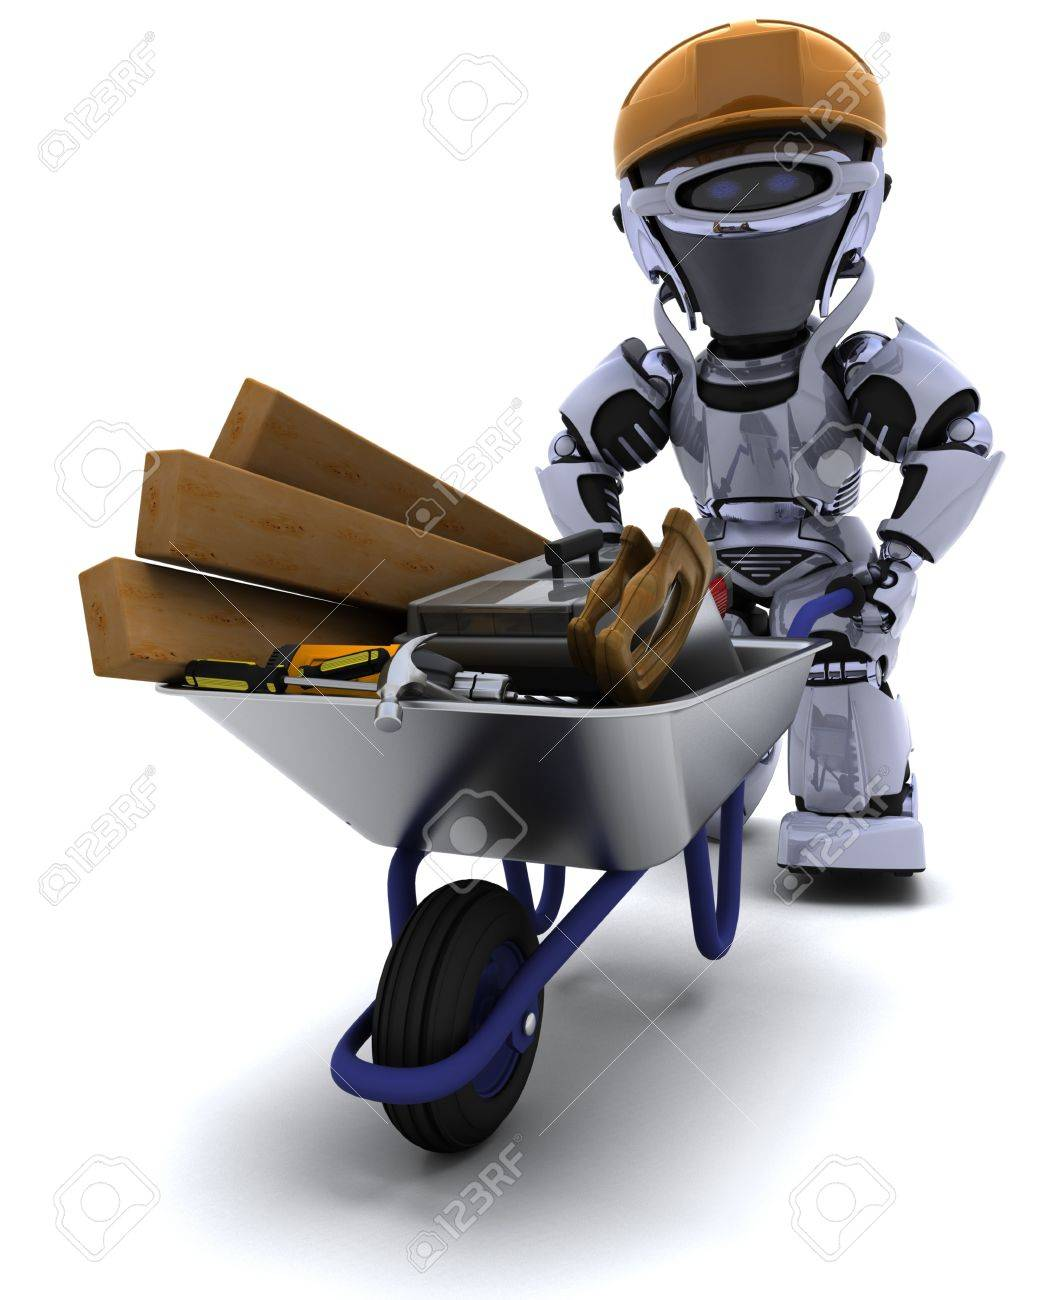 3D render of a robot builder with a wheel barrow carrying tools Stock Photo - 9549960